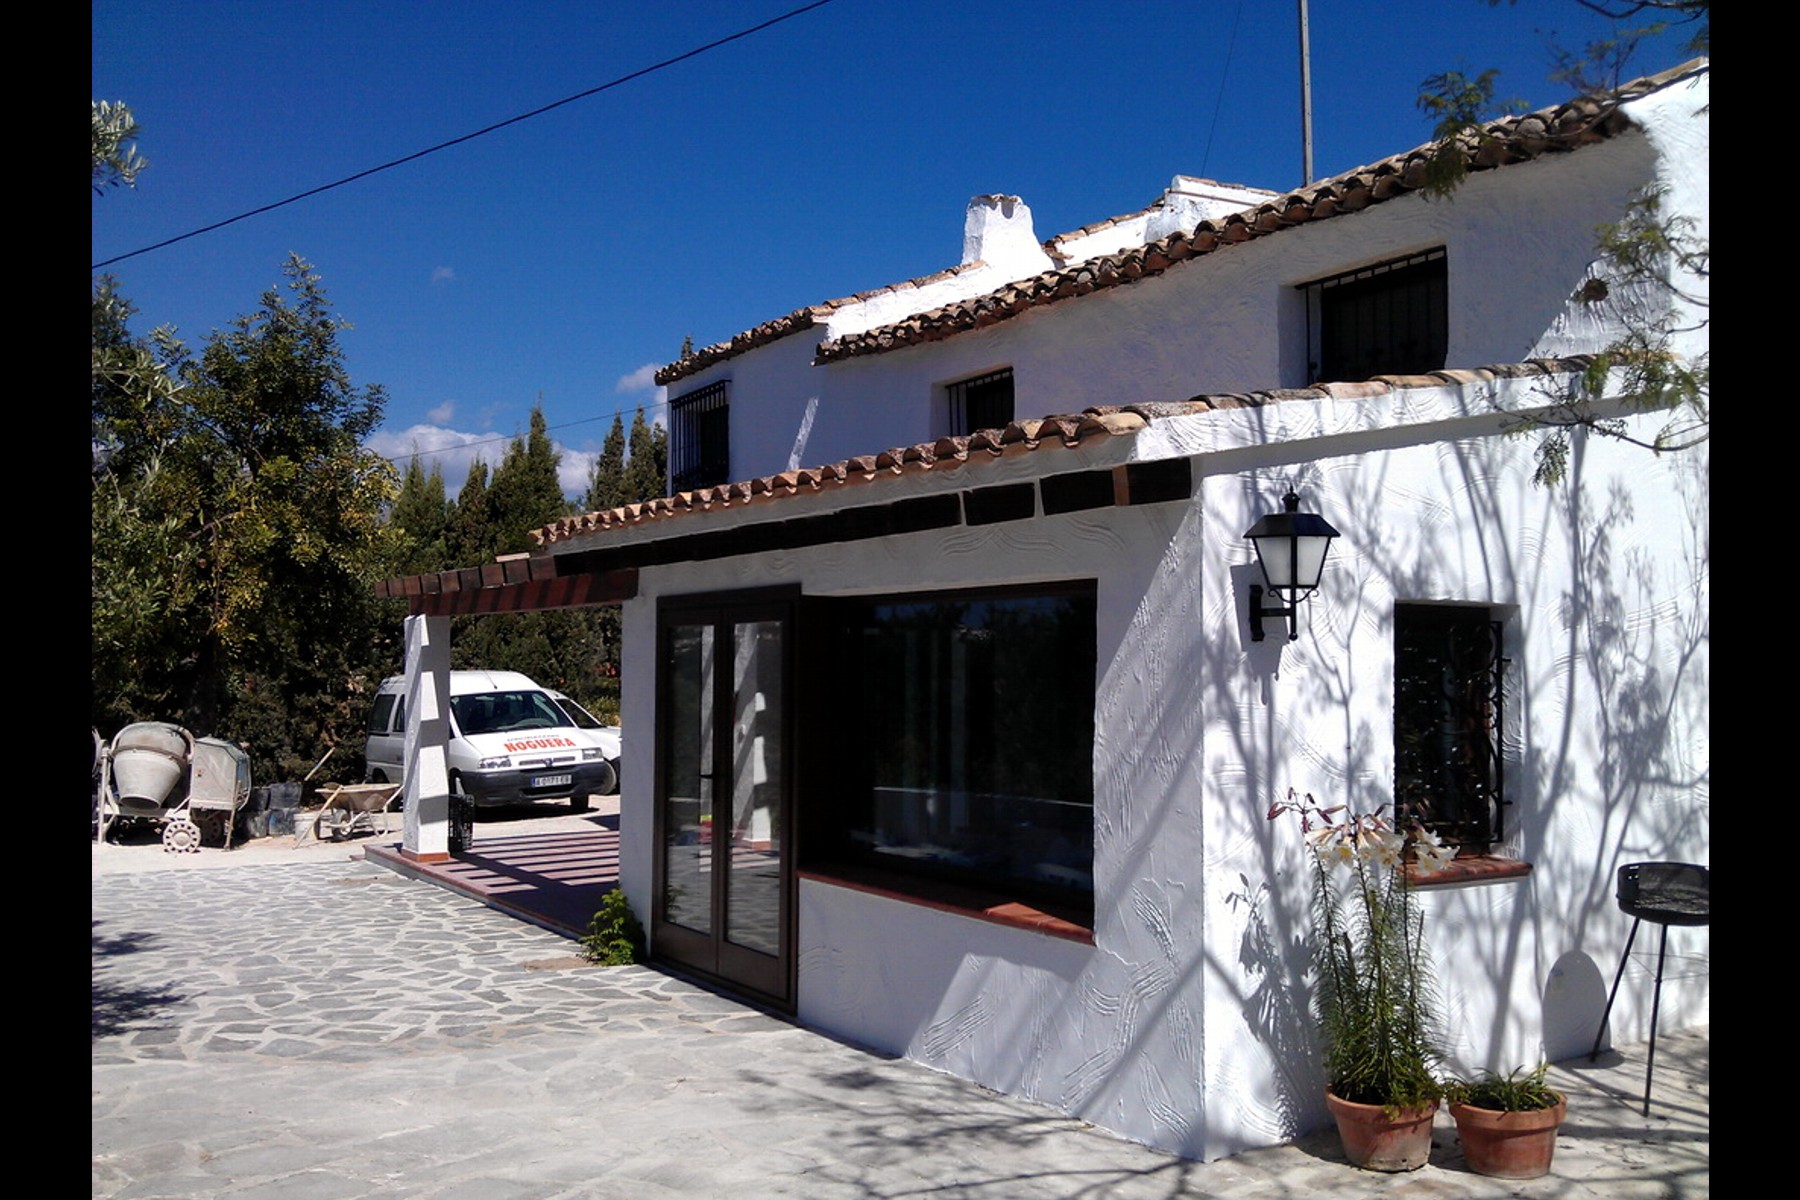 Imaginarq-422-Vivienda-unifamiliar-Altea-Alicante-11A